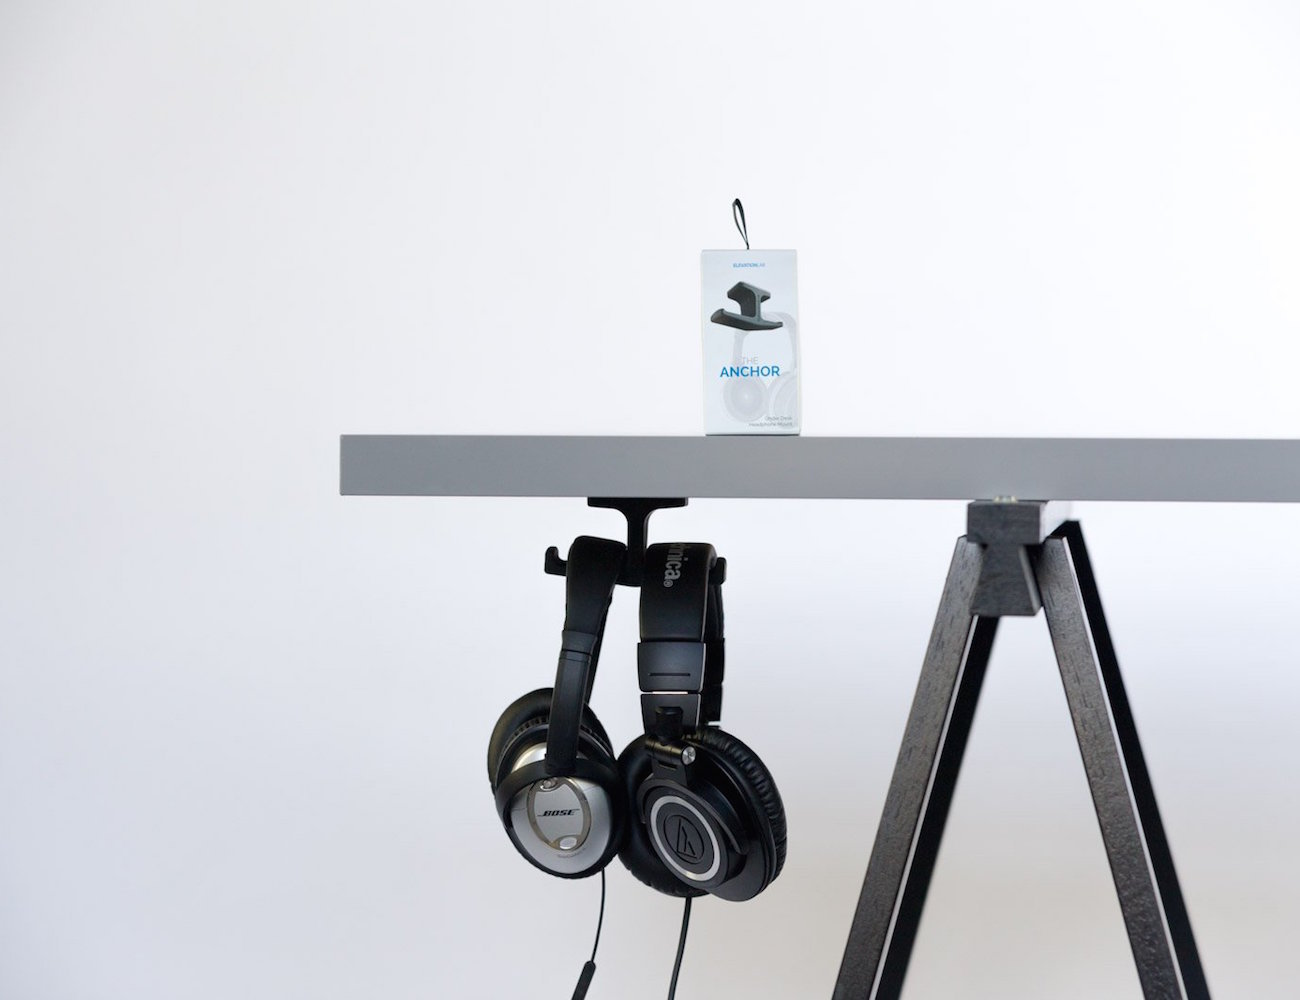 Anchor+%26%238211%3B+The+Under+Desk+Headphone+Mount